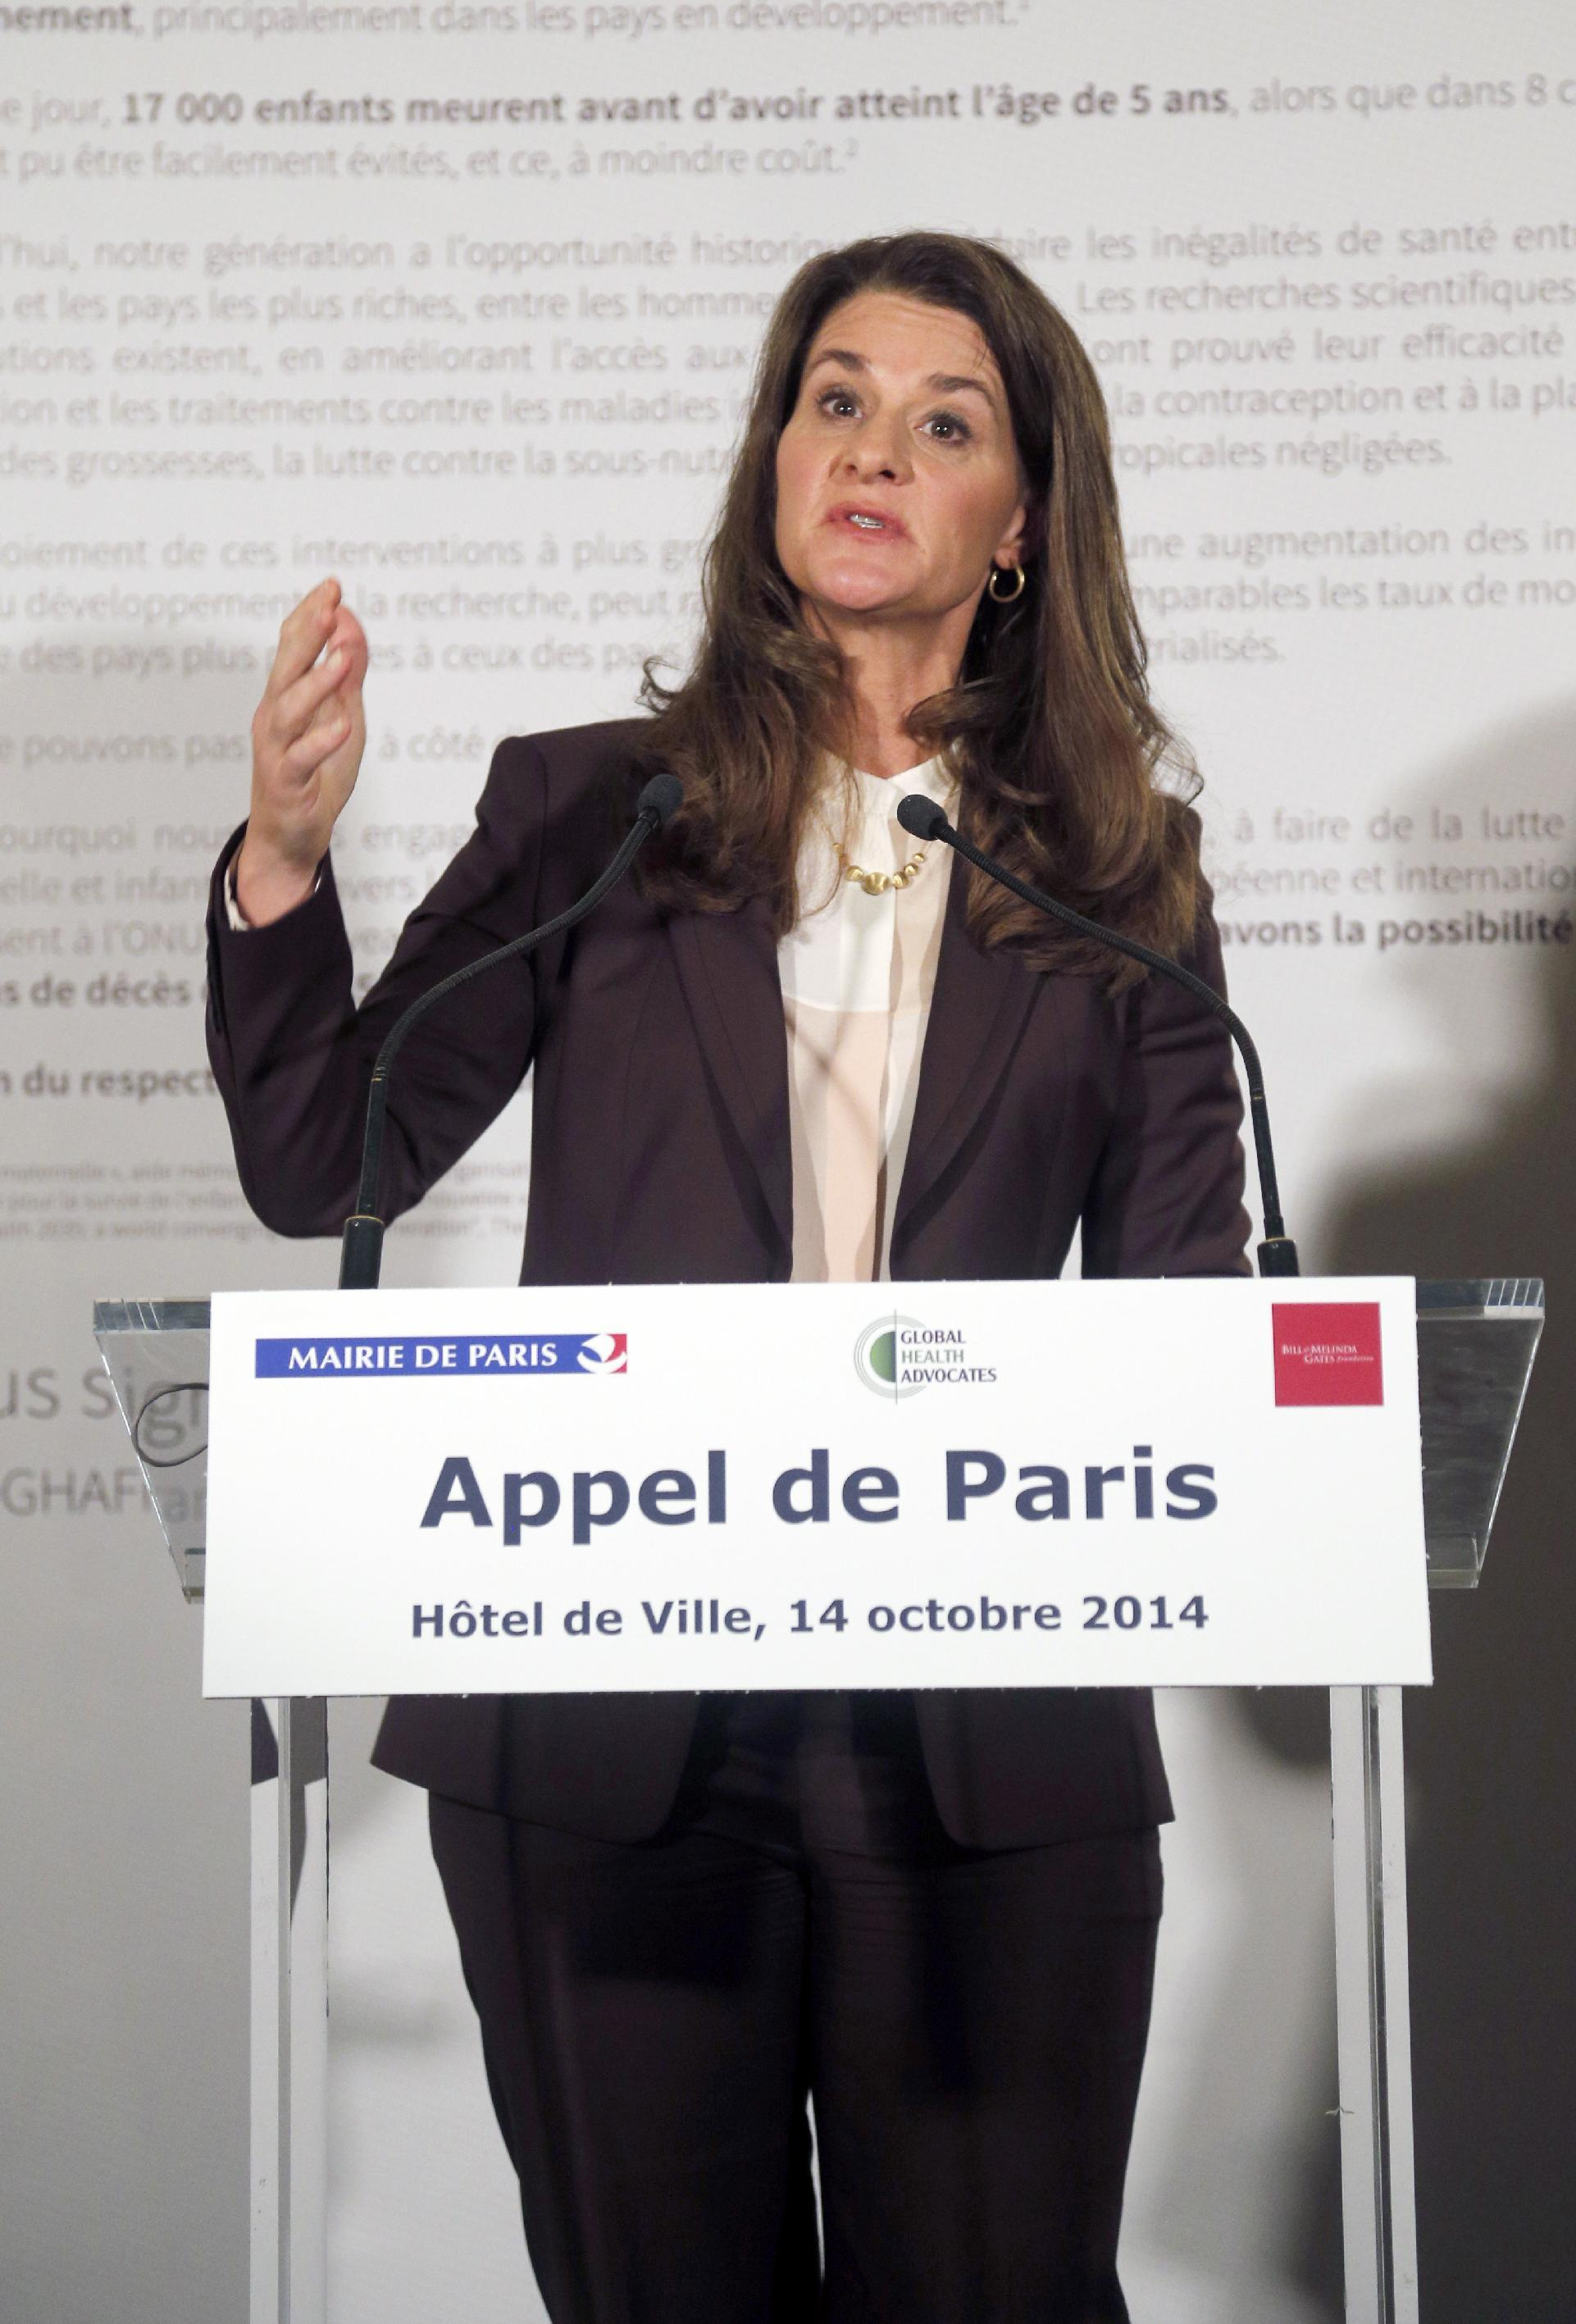 Co-chair of the Bill and Melinda Gates Foundation, Melinda Gates, speaks during a meeting in Paris on October 14, 2014, that aimed at gathering support for women and girls in development (AFP Photo/Francois Guillot)